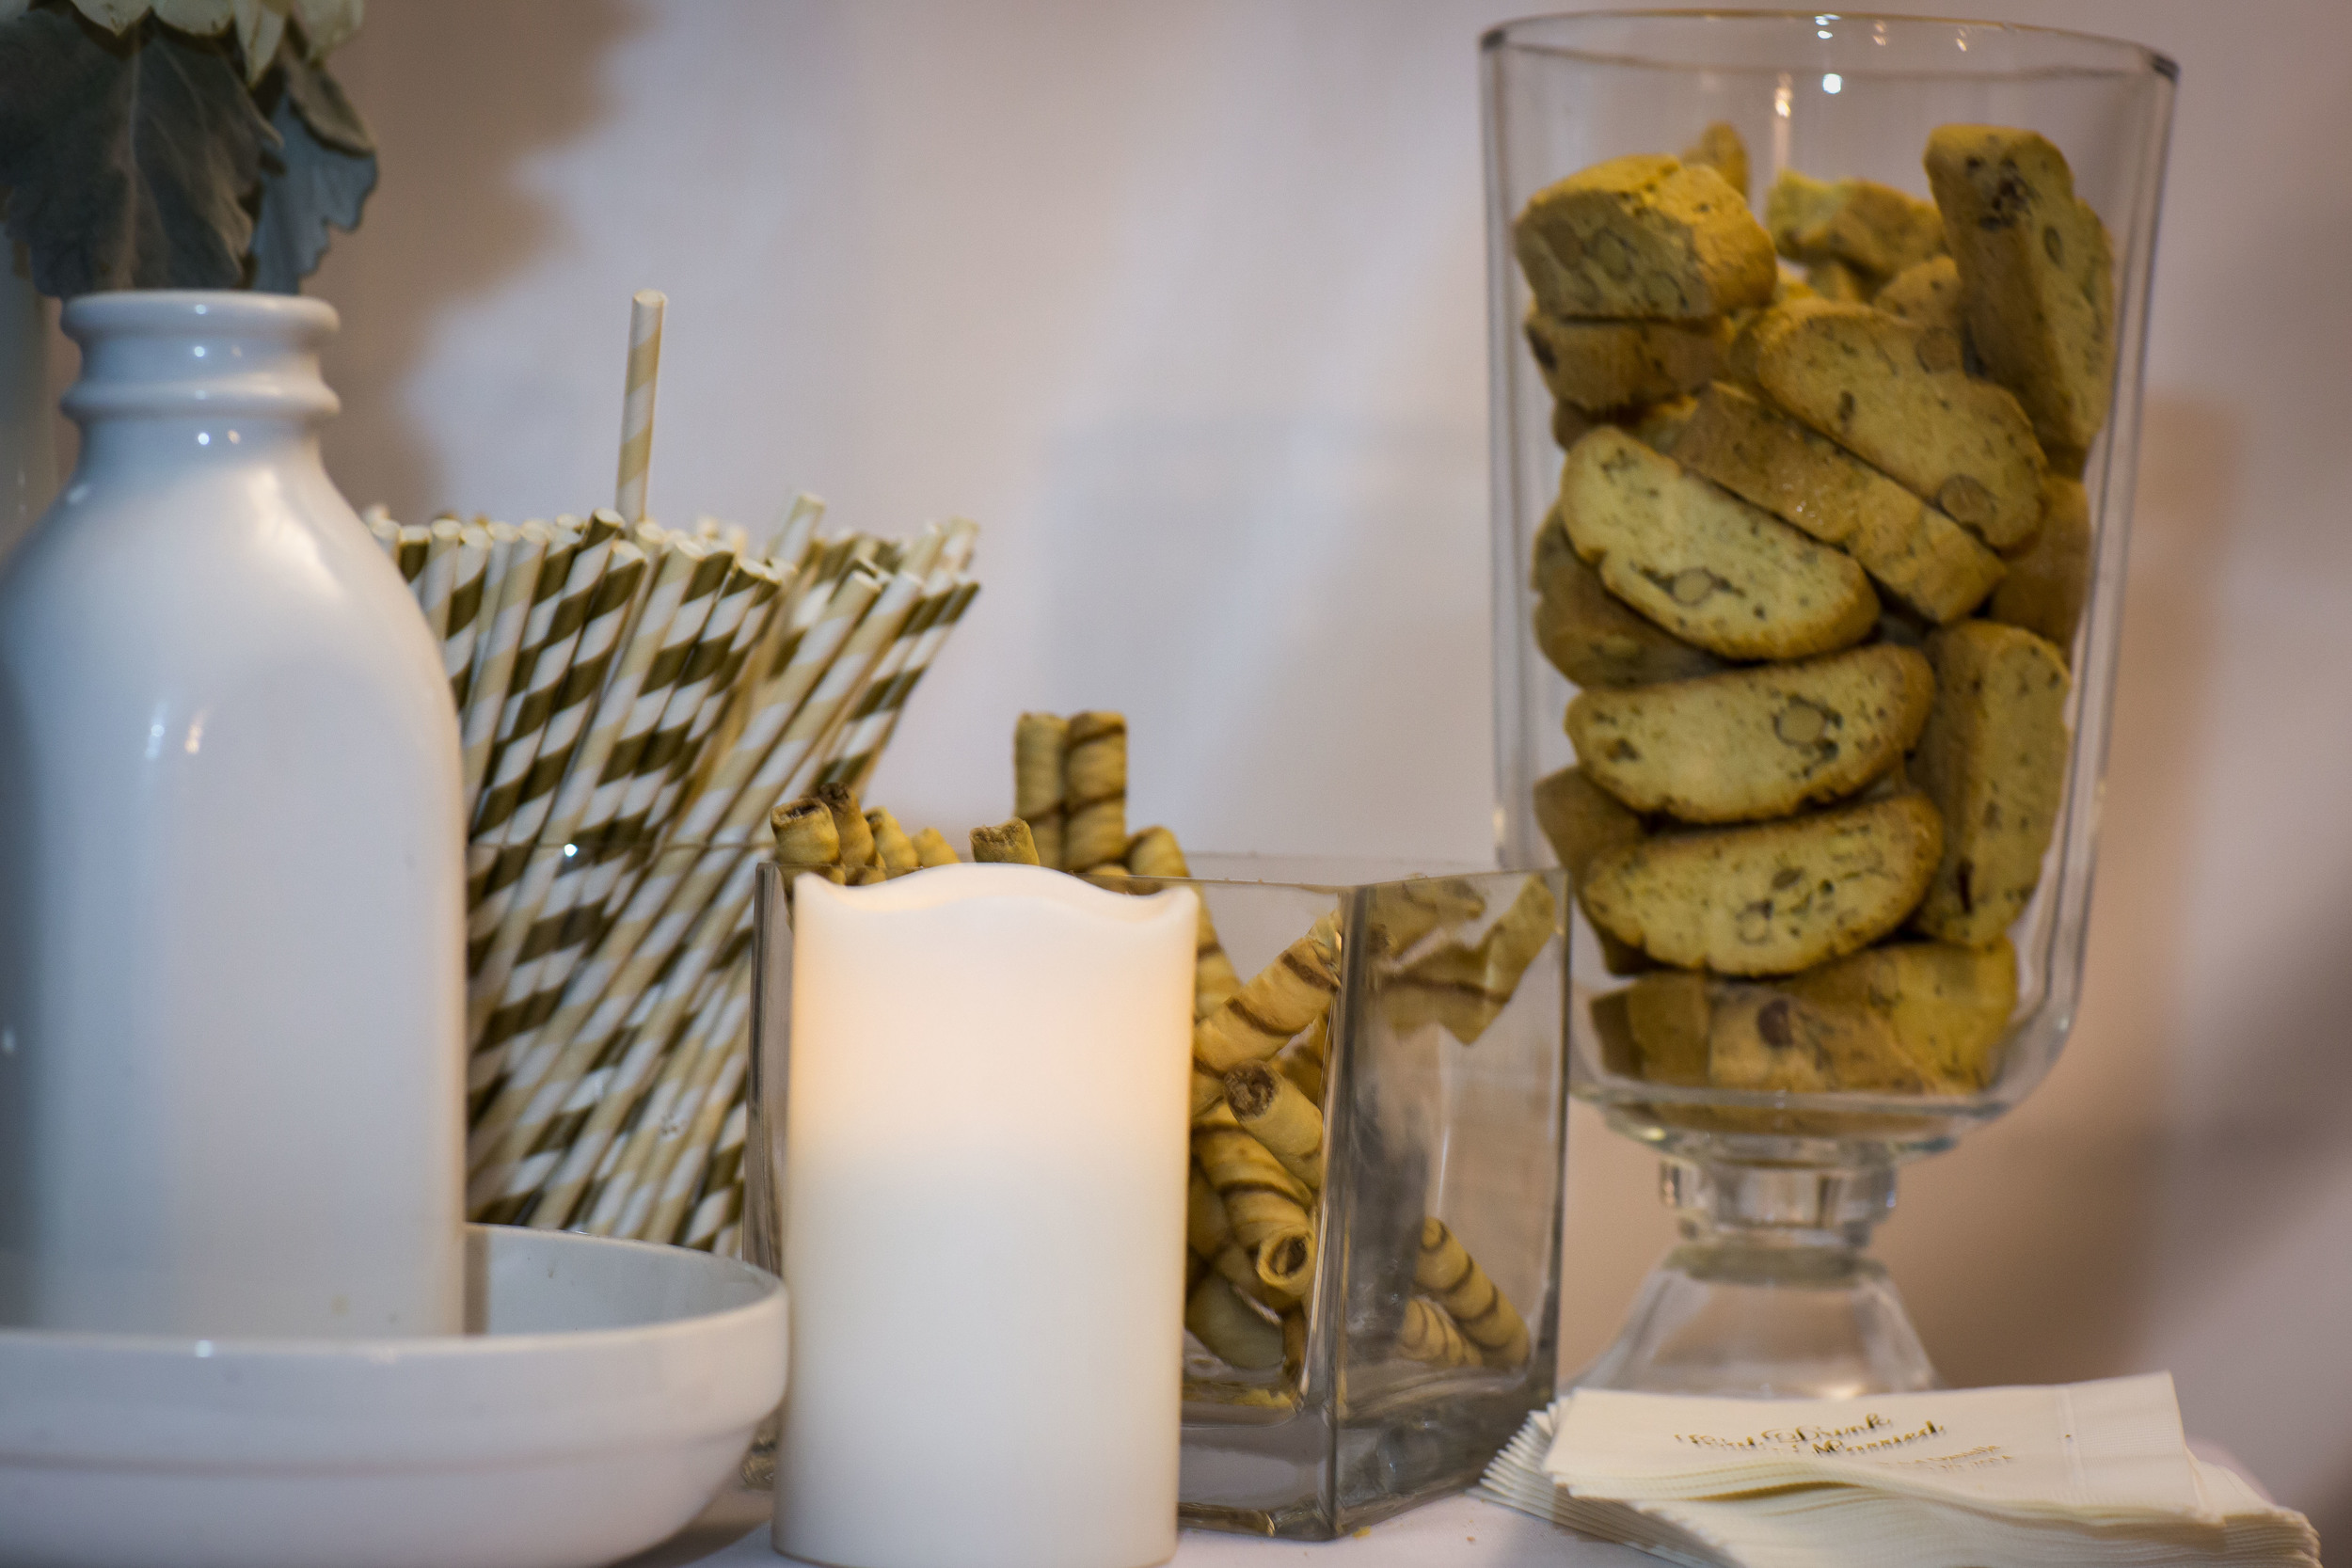 we had a coffee bar with biscottis,chocolate pirouettes, straws that match the wedding, and personalized napakins.